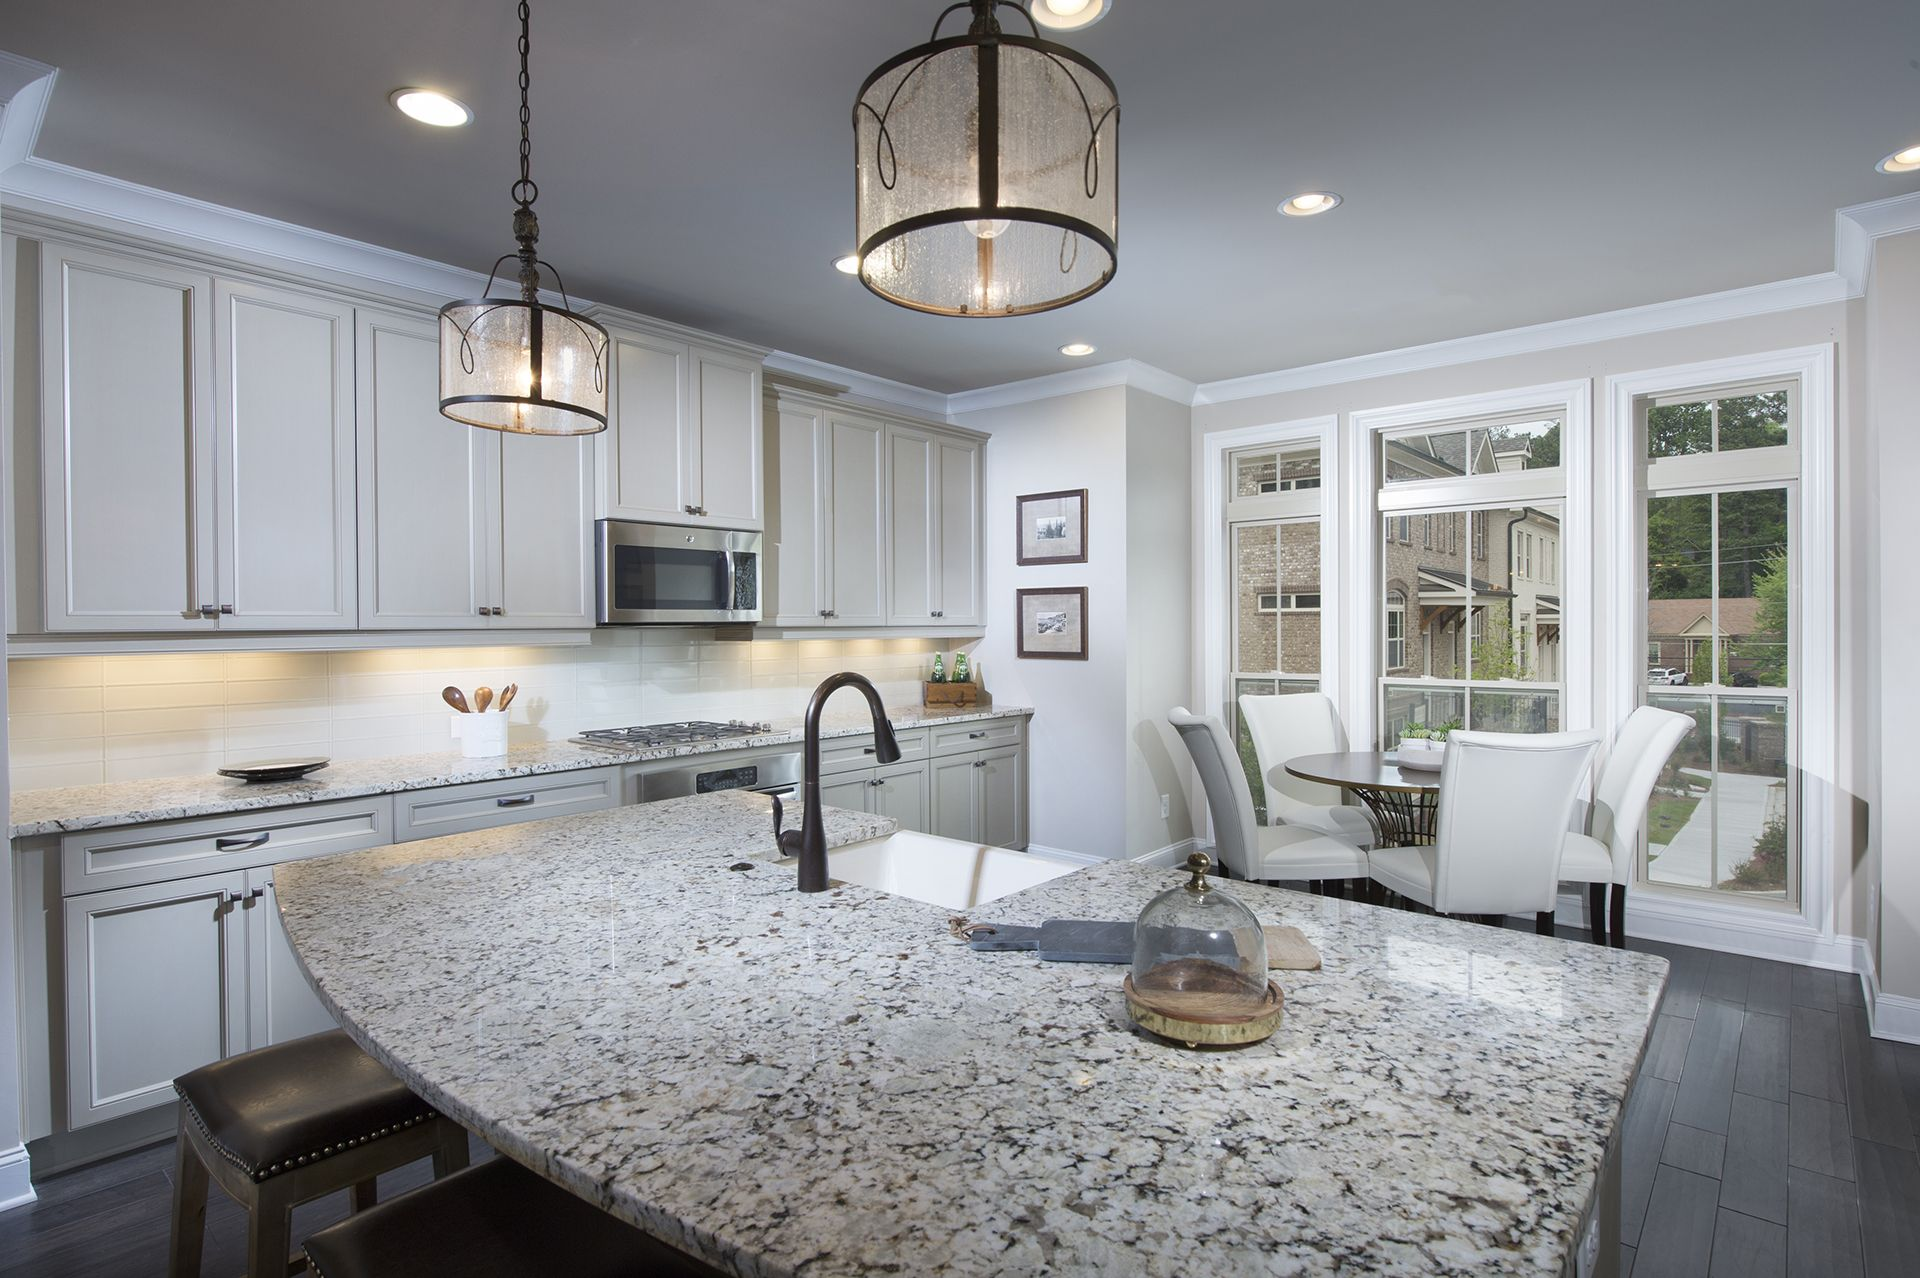 The Foster Home Design Provides Plenty Of Seating With A Eat Up Entrancing Designing The Perfect Kitchen Review